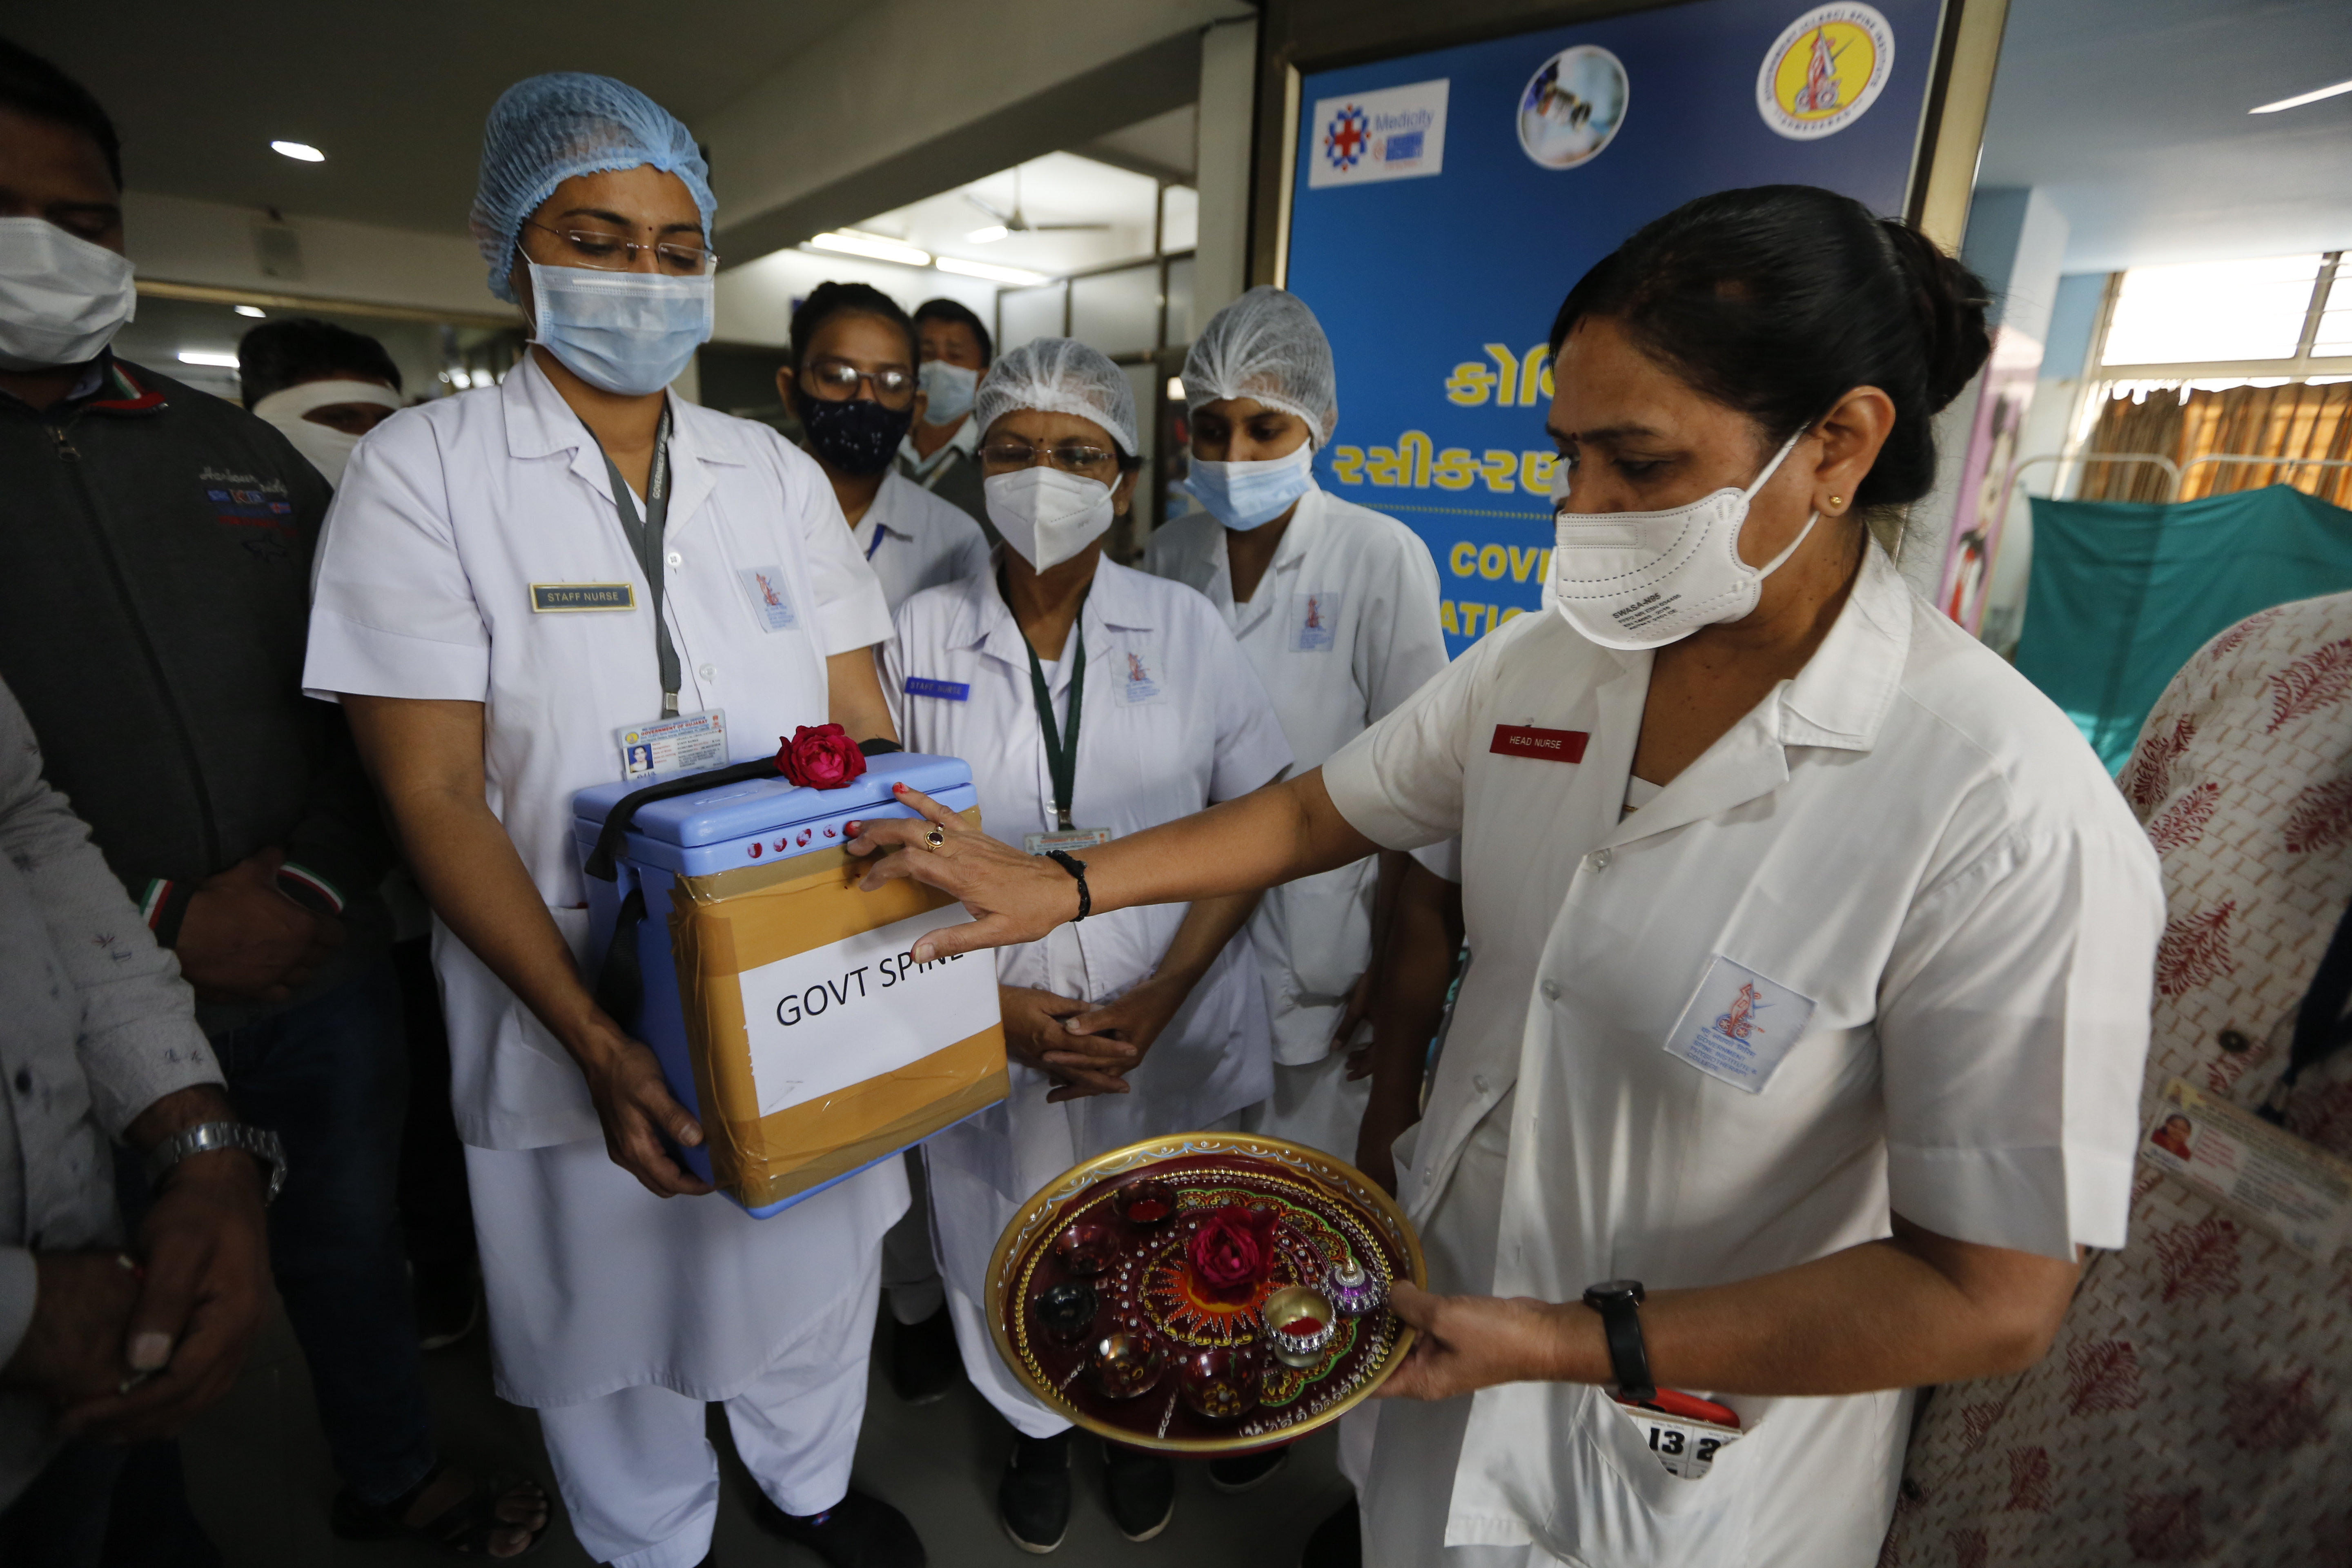 A nurse, right, performs rituals to a box containing COVID-19 vaccines upon its arrival at a government Hospital in Ahmedabad, India, on Saturday.